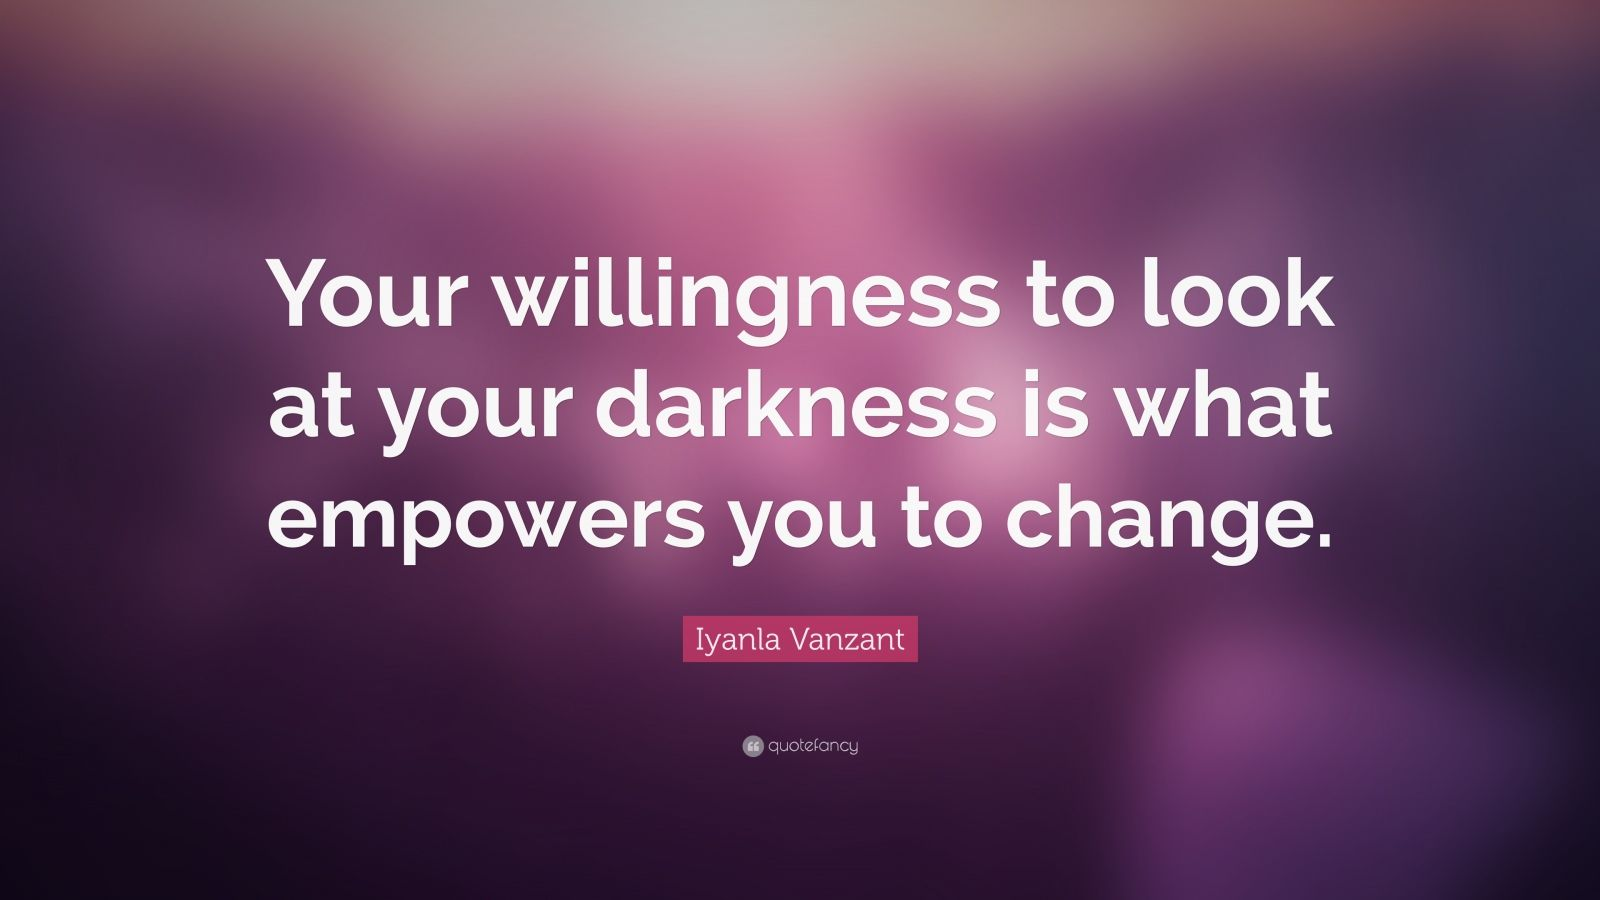 """Iyanla Vanzant Quote: """"Your willingness to look at your darkness is what empowers you to change."""""""